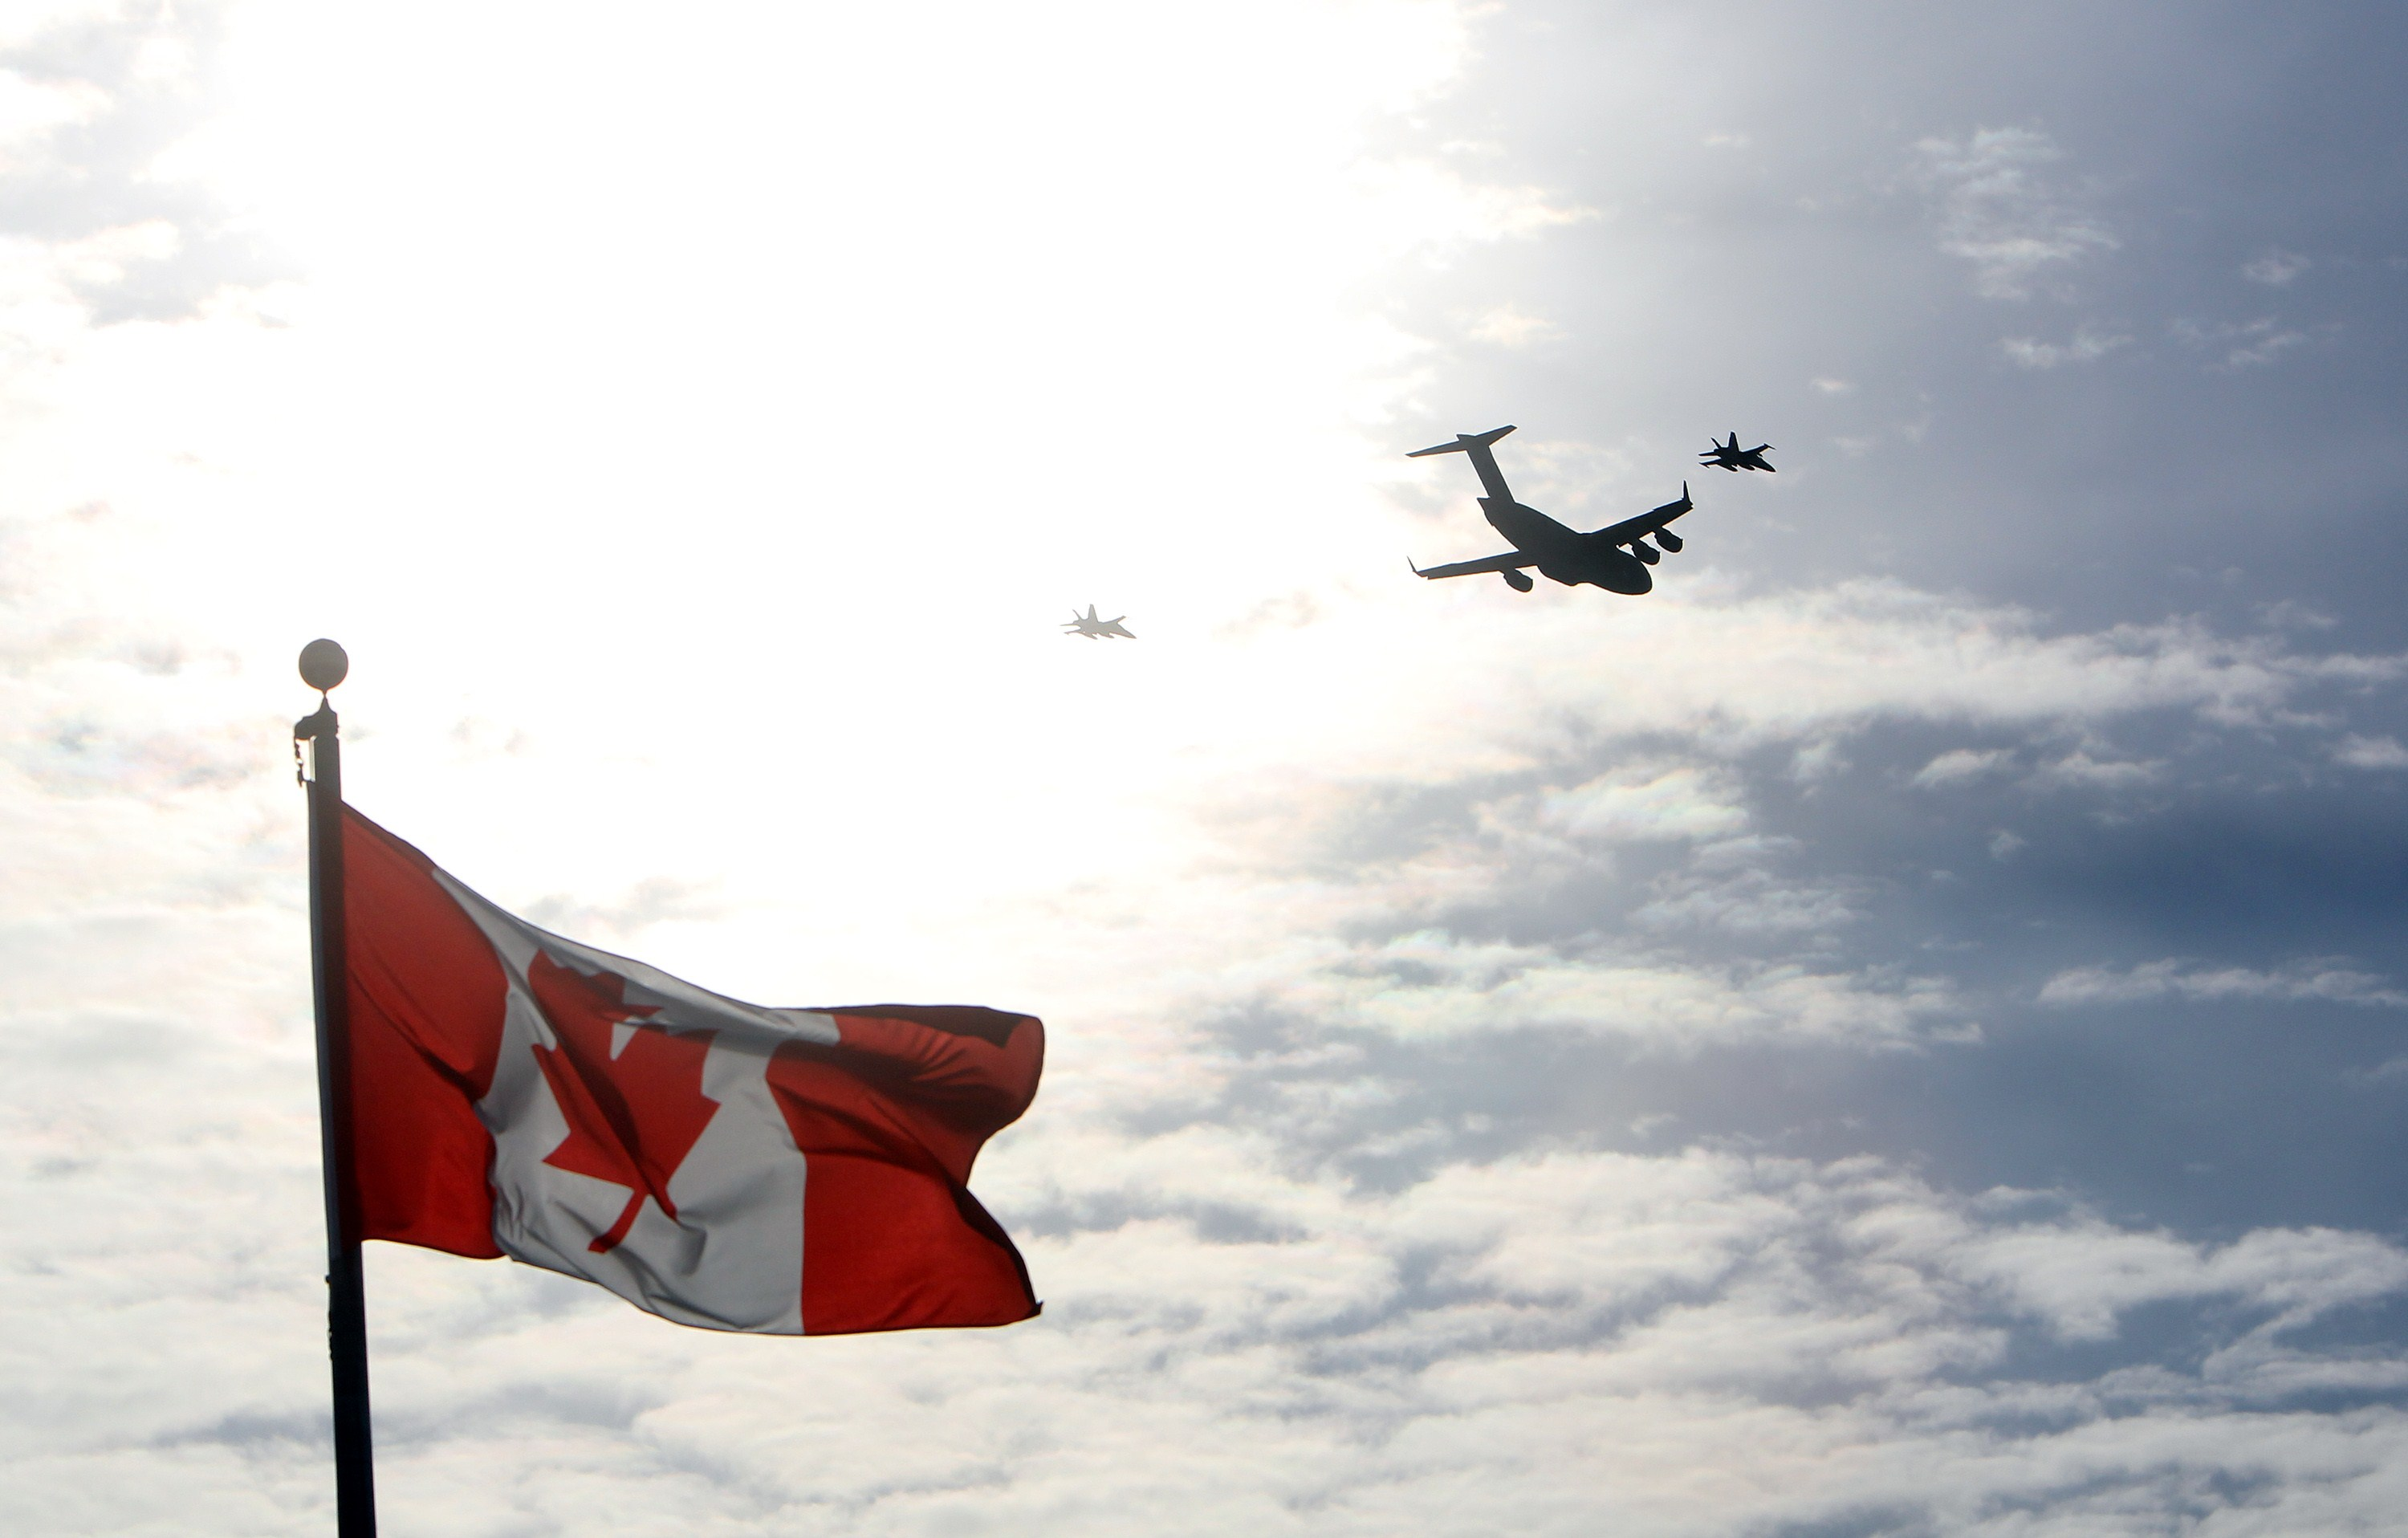 The plane carrying the last of Canada's troops in Afghanistan is escorted through the air by fighter jets.